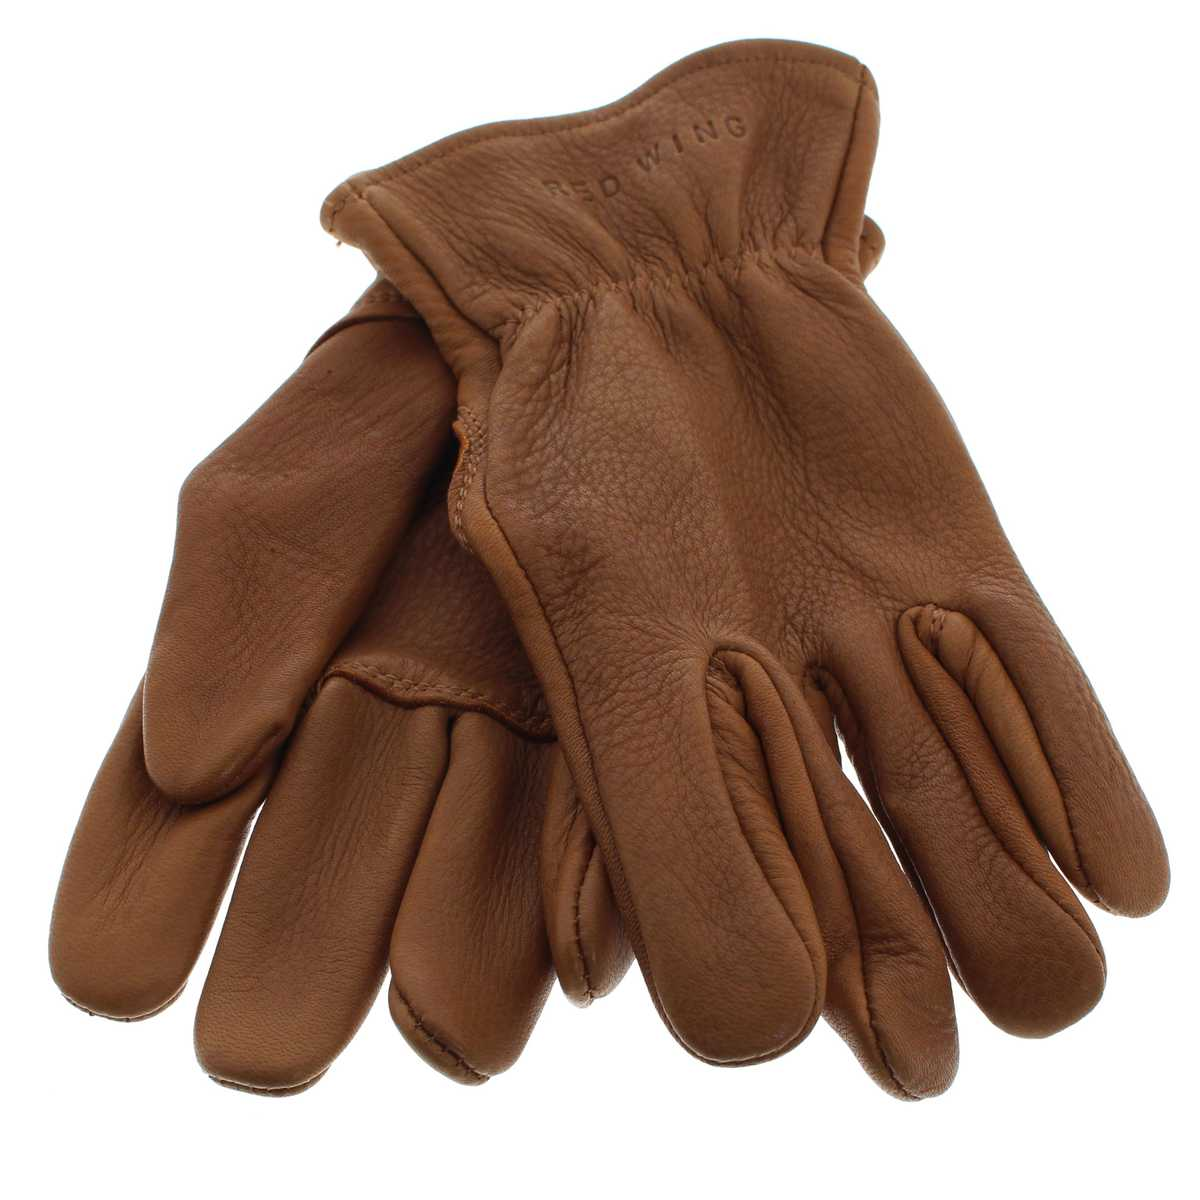 Red Wing Shoes 95234 GLOVES Nutmeg gloves - brown